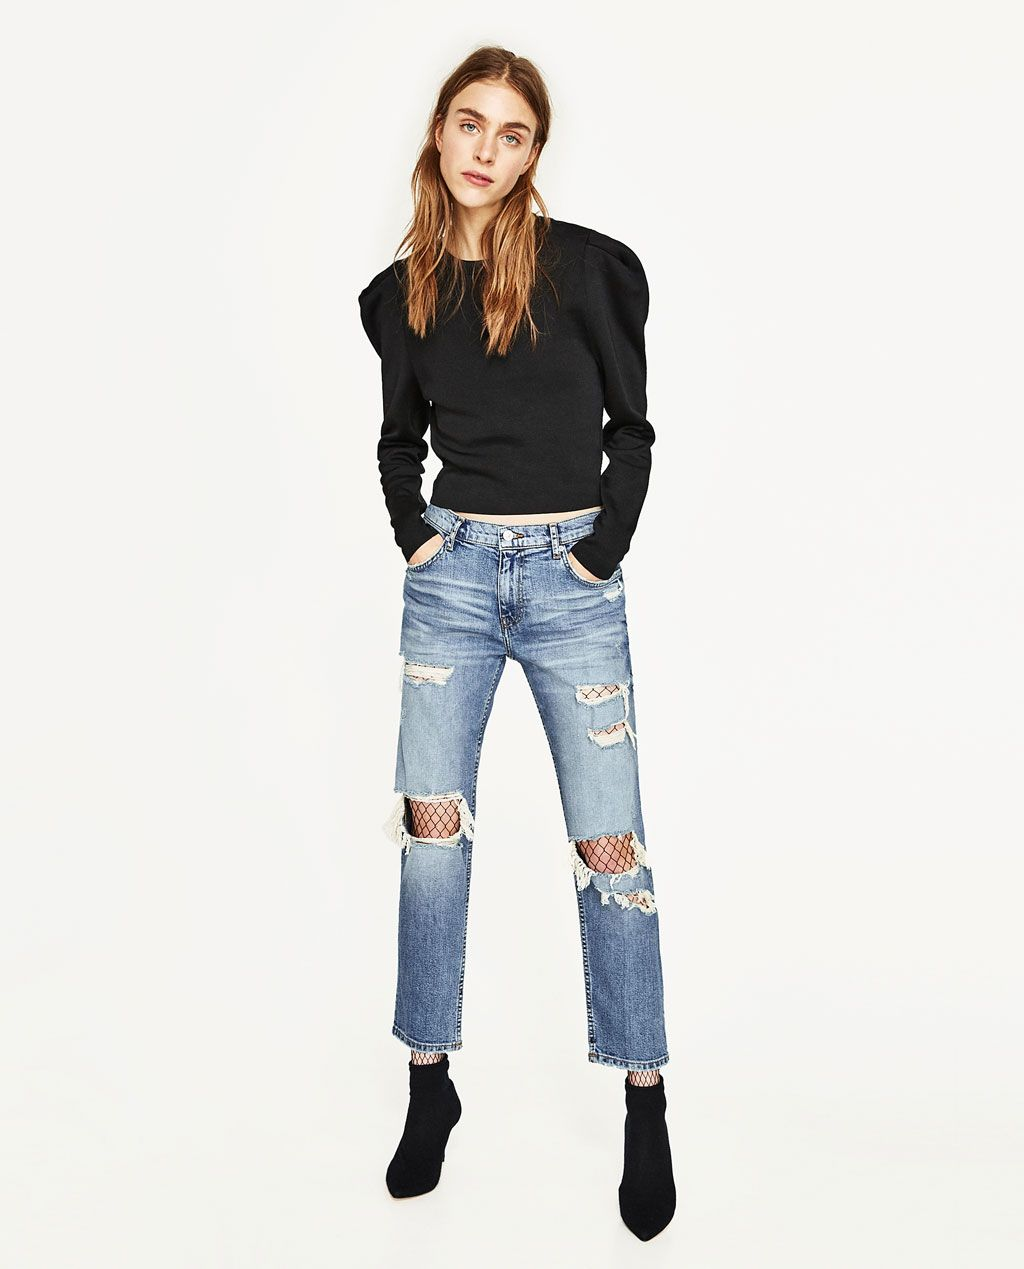 cf3a3d27 Image 1 of SLIM FIT MID-RISE BOYFRIEND JEANS from Zara | Want List ...